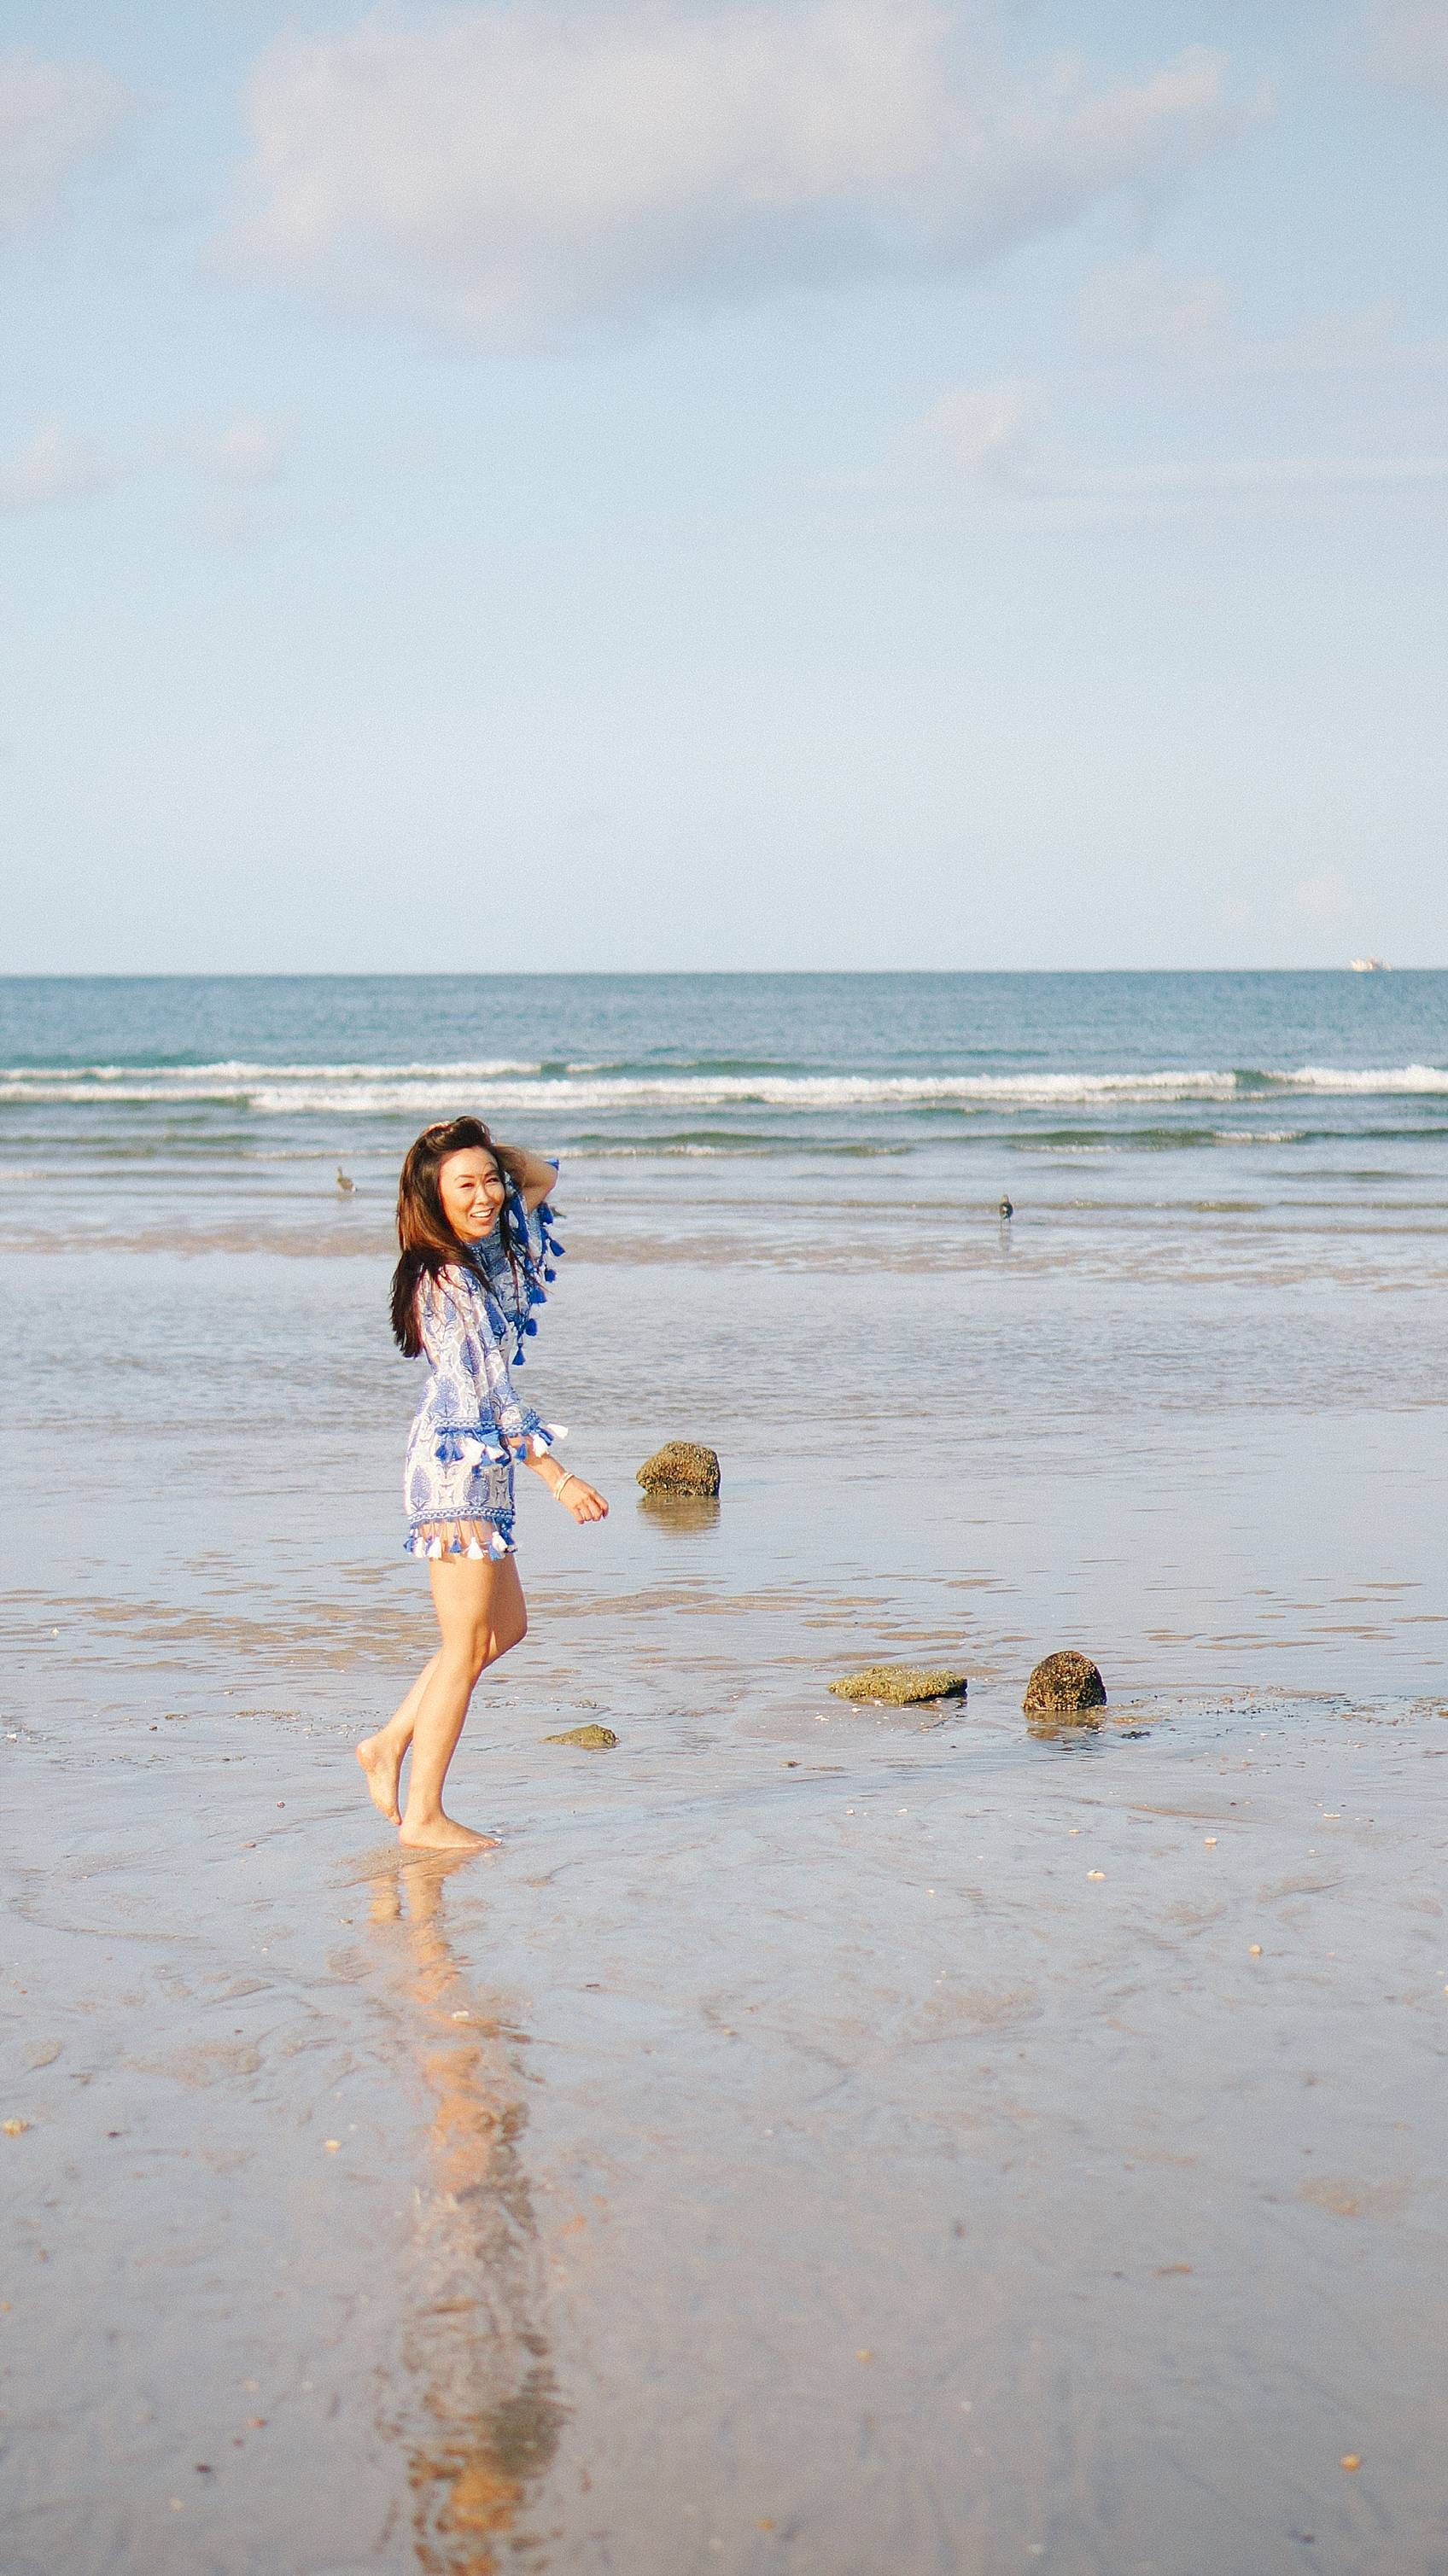 Lifestyle blogger Diana Elizabeth in Puerto Penasco Rocky Point Mexico in water wearing blue and white tassel romper